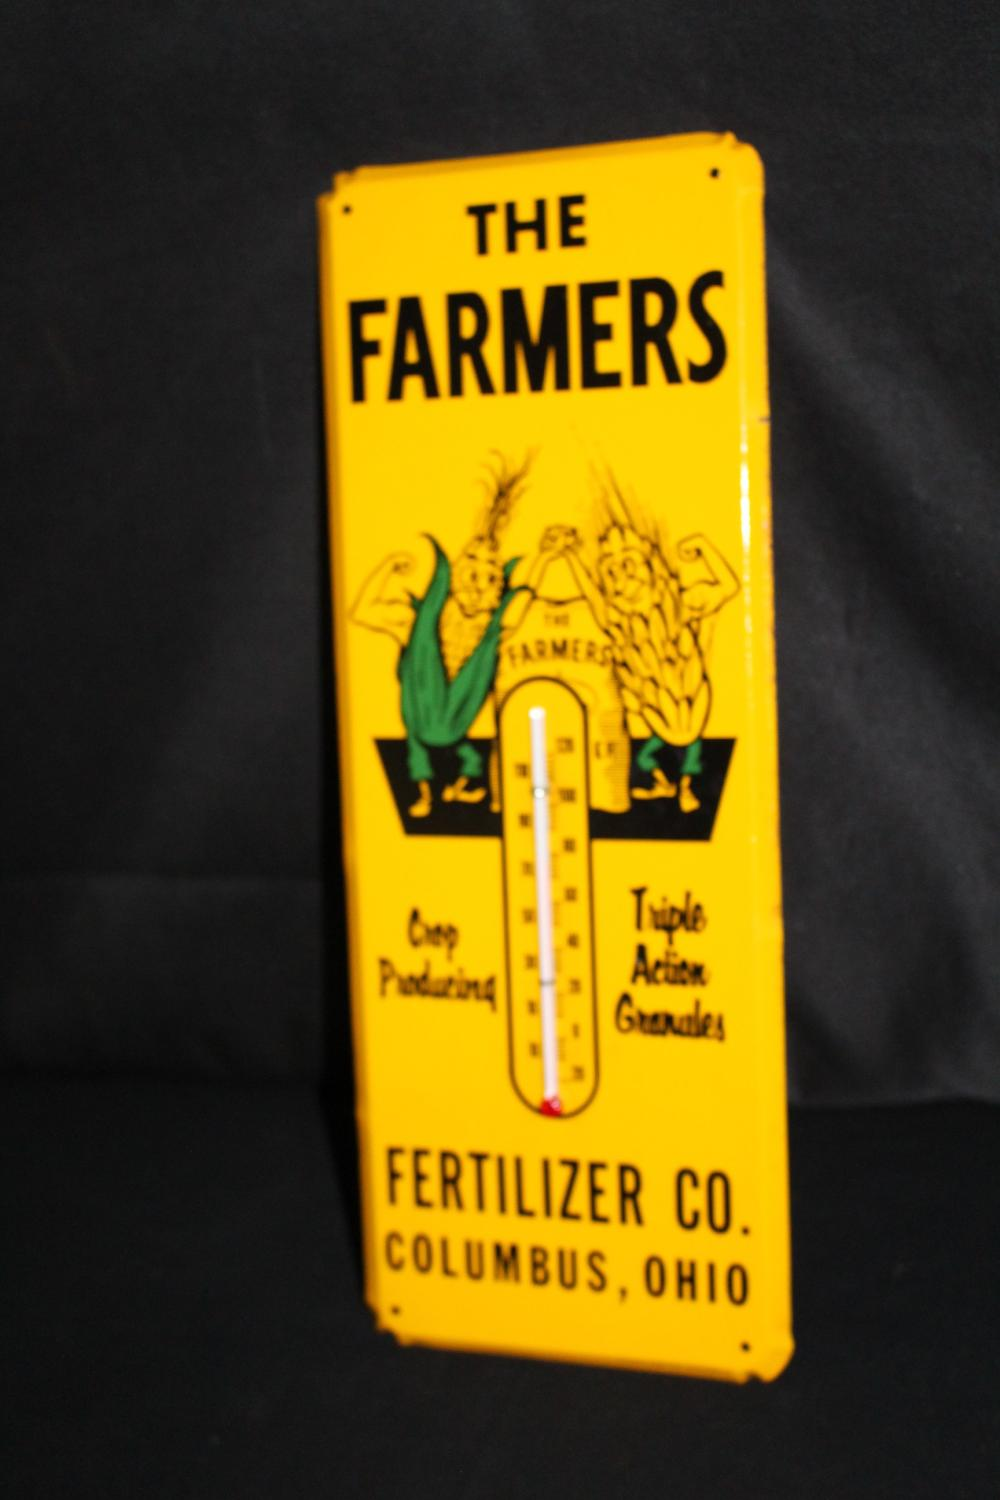 THE FARMERS FERTILIZER CO THERMOMETER SIGN